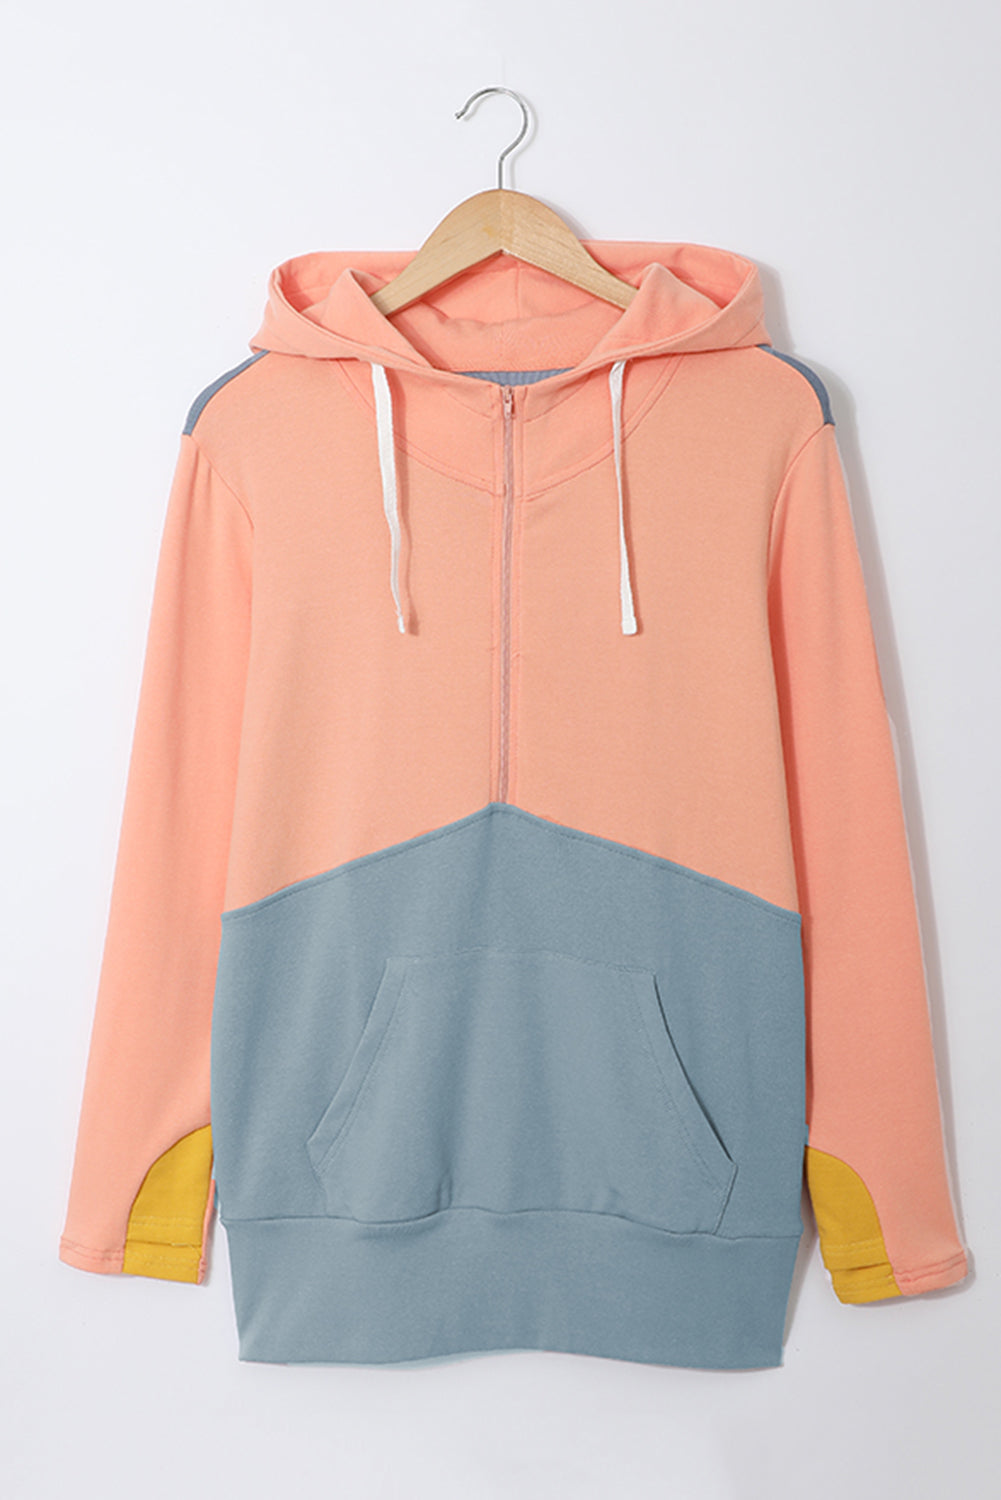 Sky Blue Half Zip Colorblock Hoodie Sweatshirts & Hoodies Discount Designer Fashion Clothes Shoes Bags Women Men Kids Children Black Owned Business